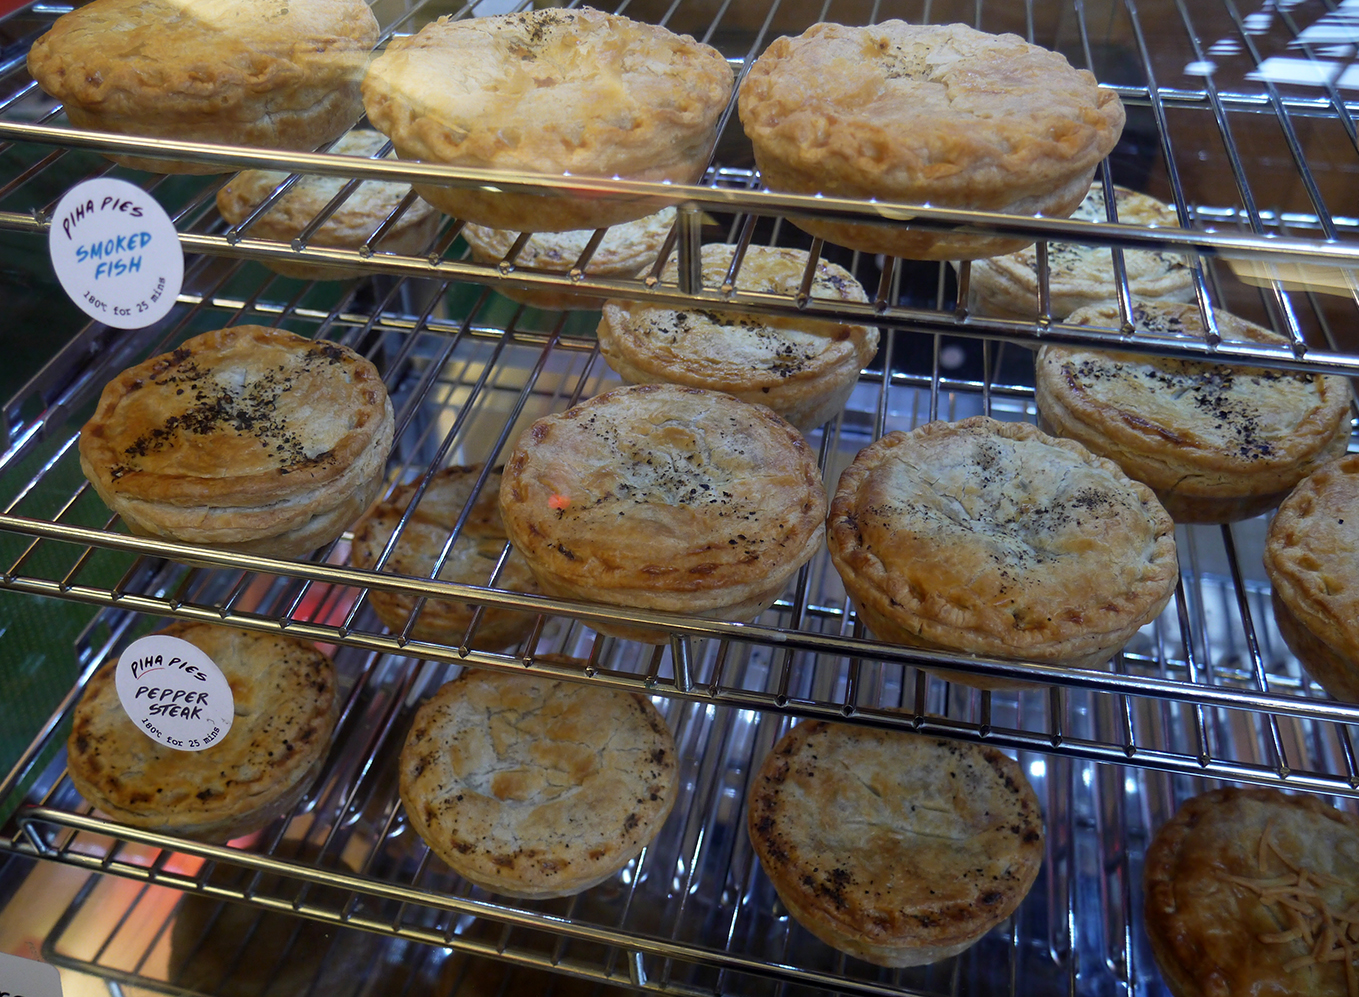 And the delicious pies everyone was talking about!!